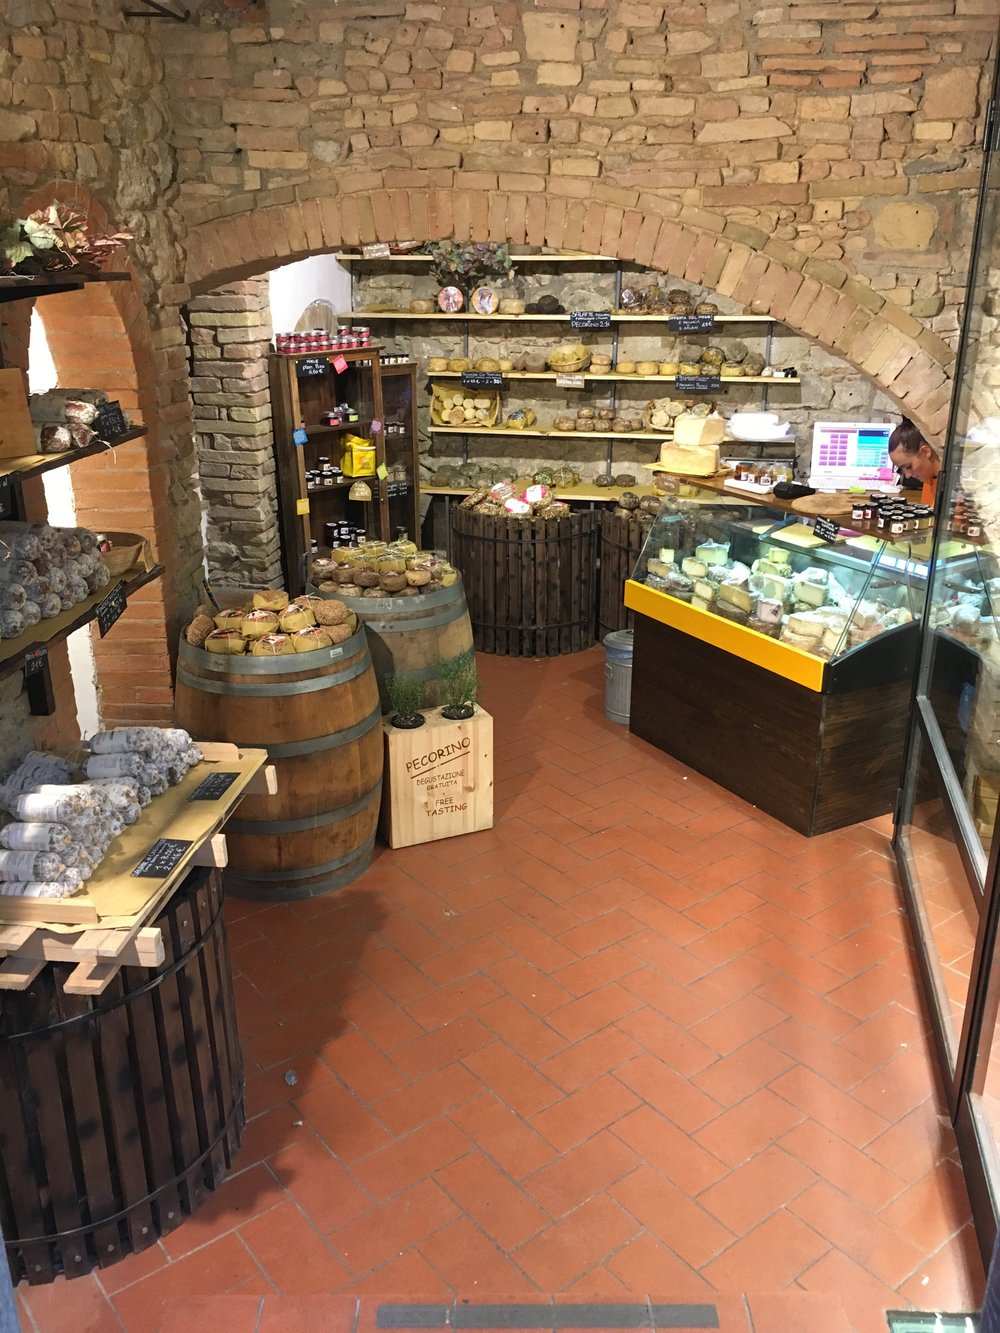 How cool is this cheese shop?